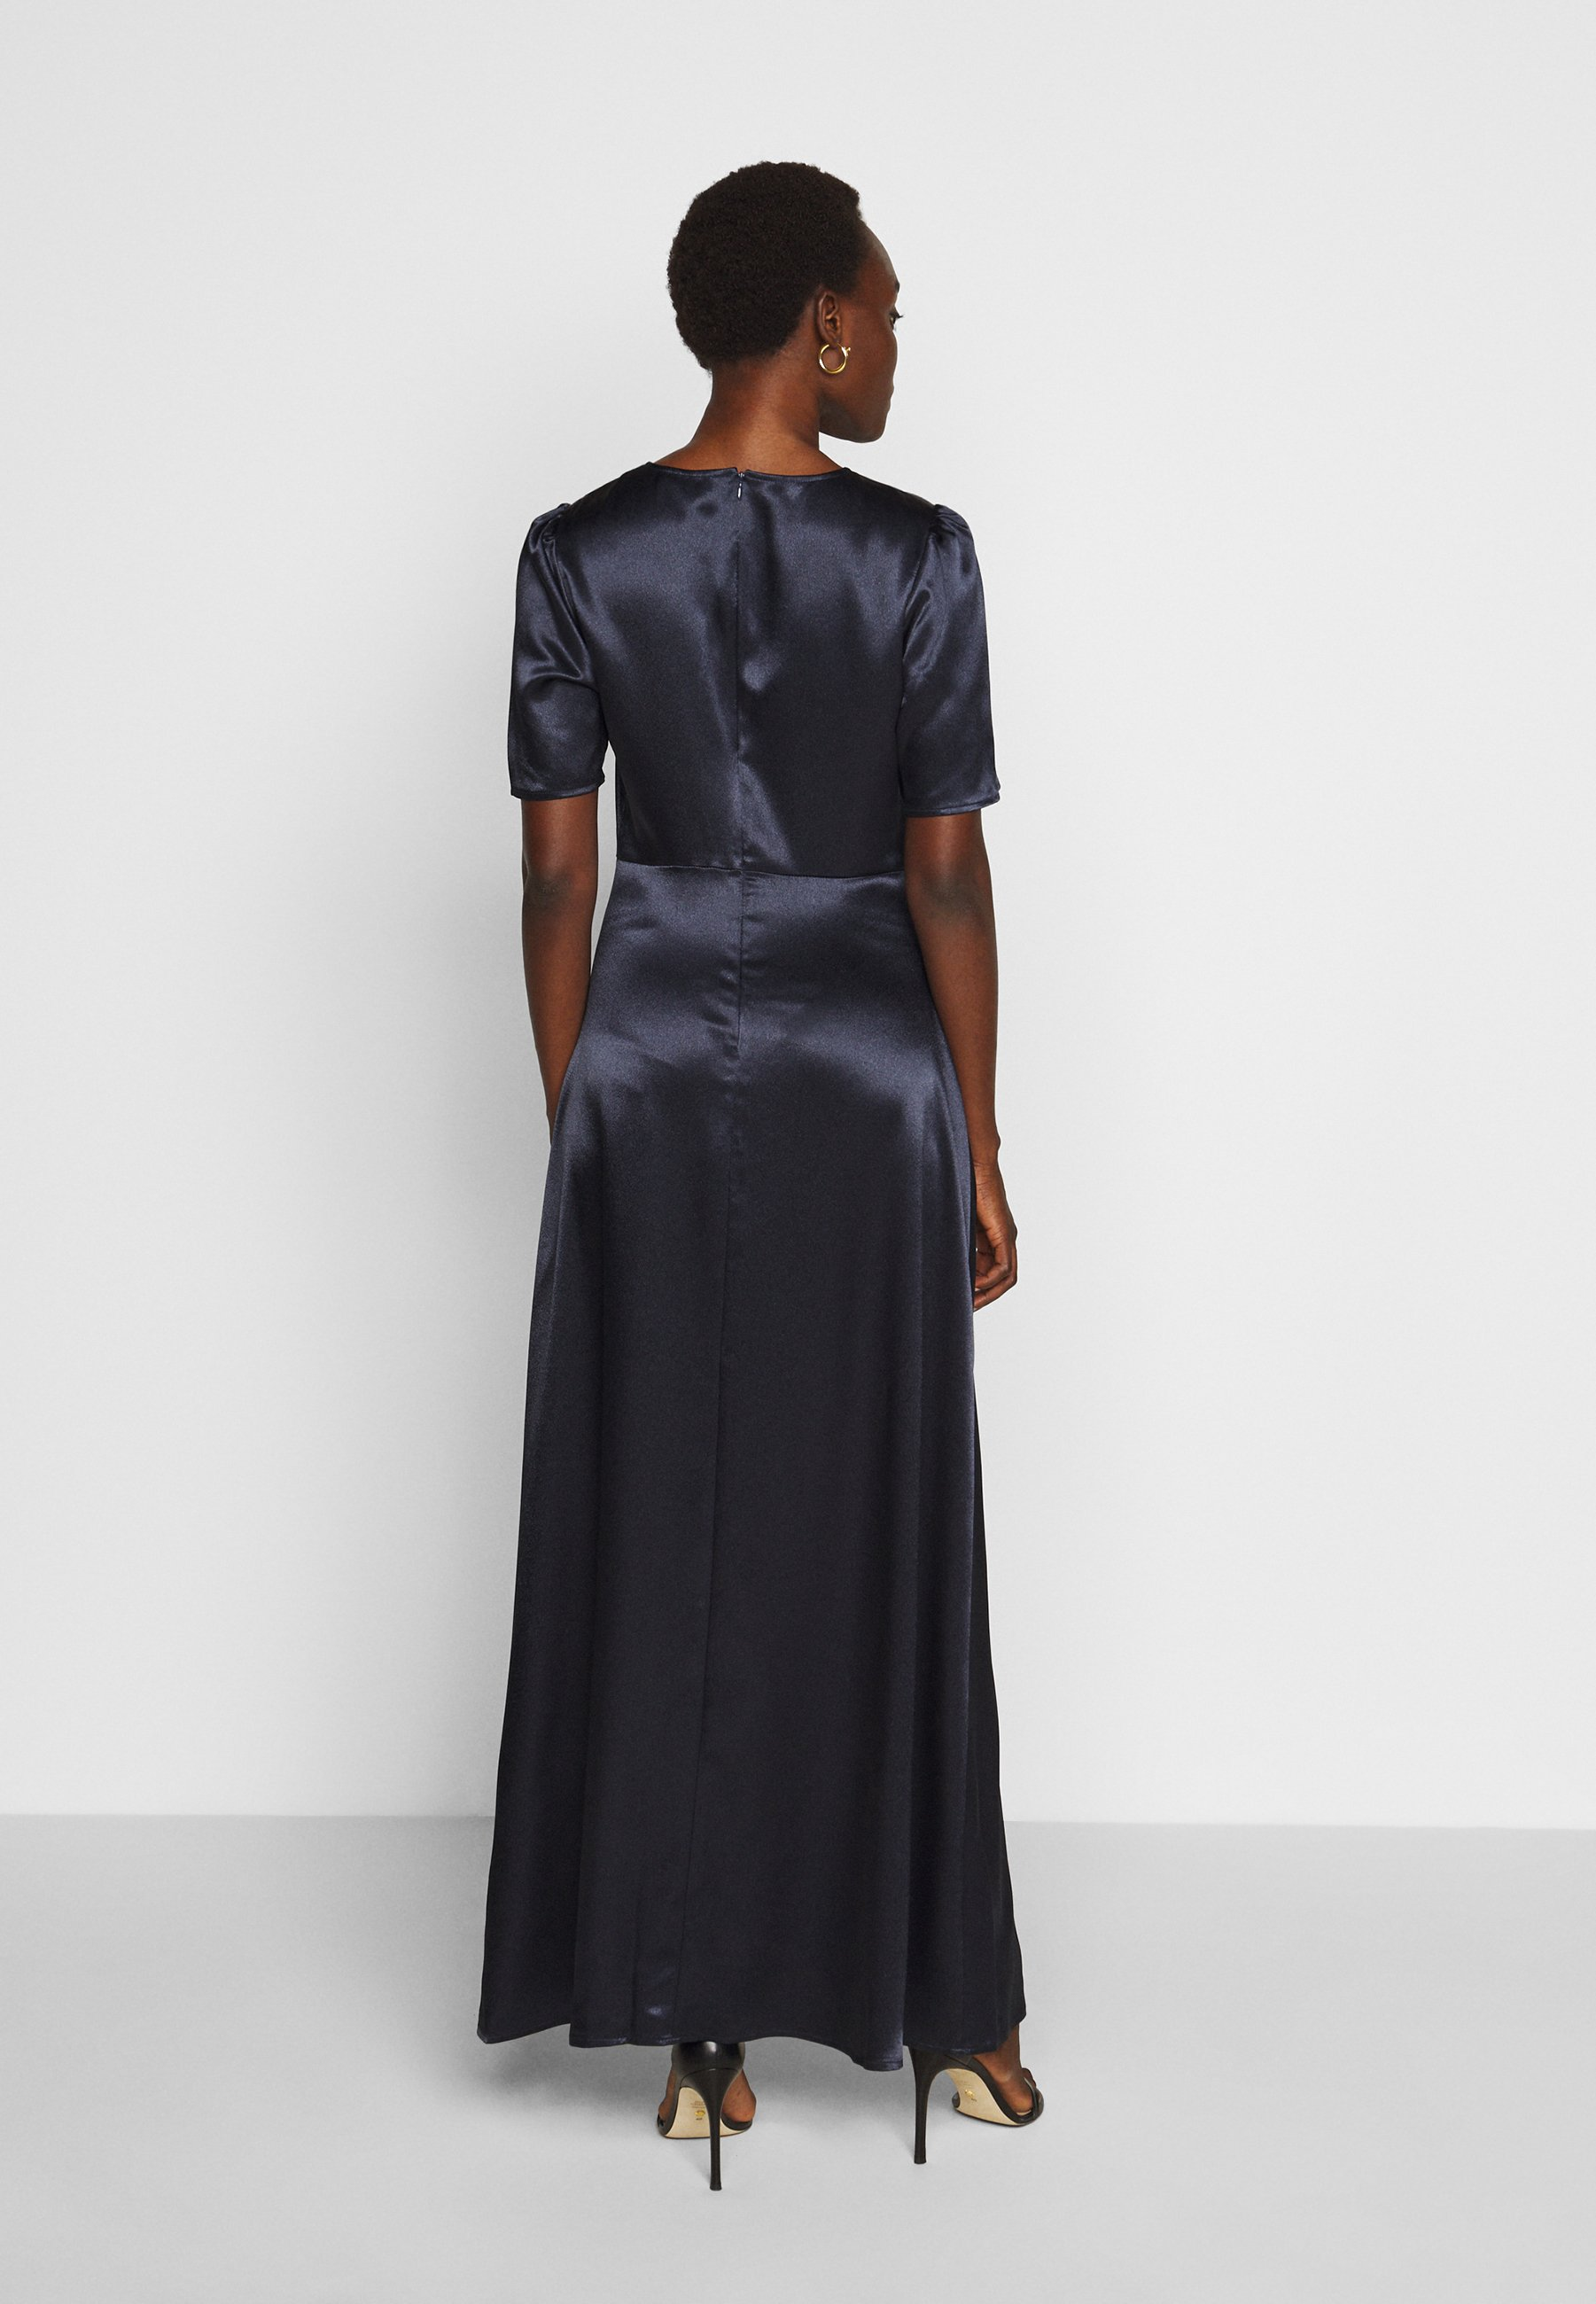 New Arrival Women's Clothing 2nd Day TALIA Occasion wear dark blue ppGmpOLgz